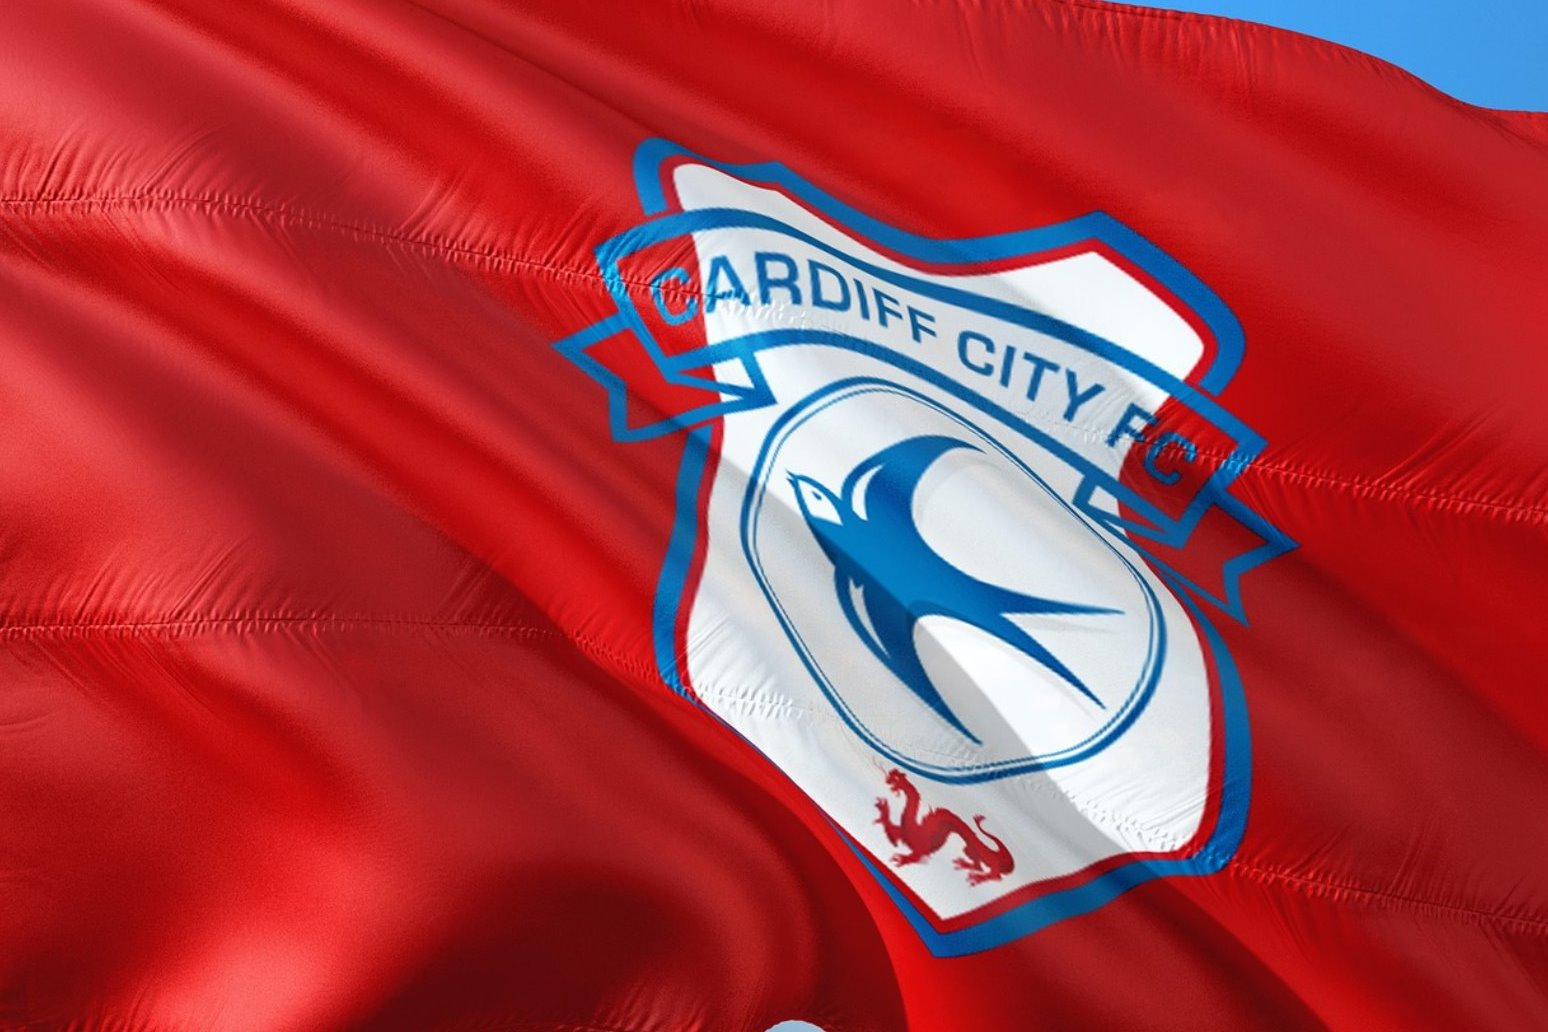 Fears for new Cardiff signing after plane goes missing